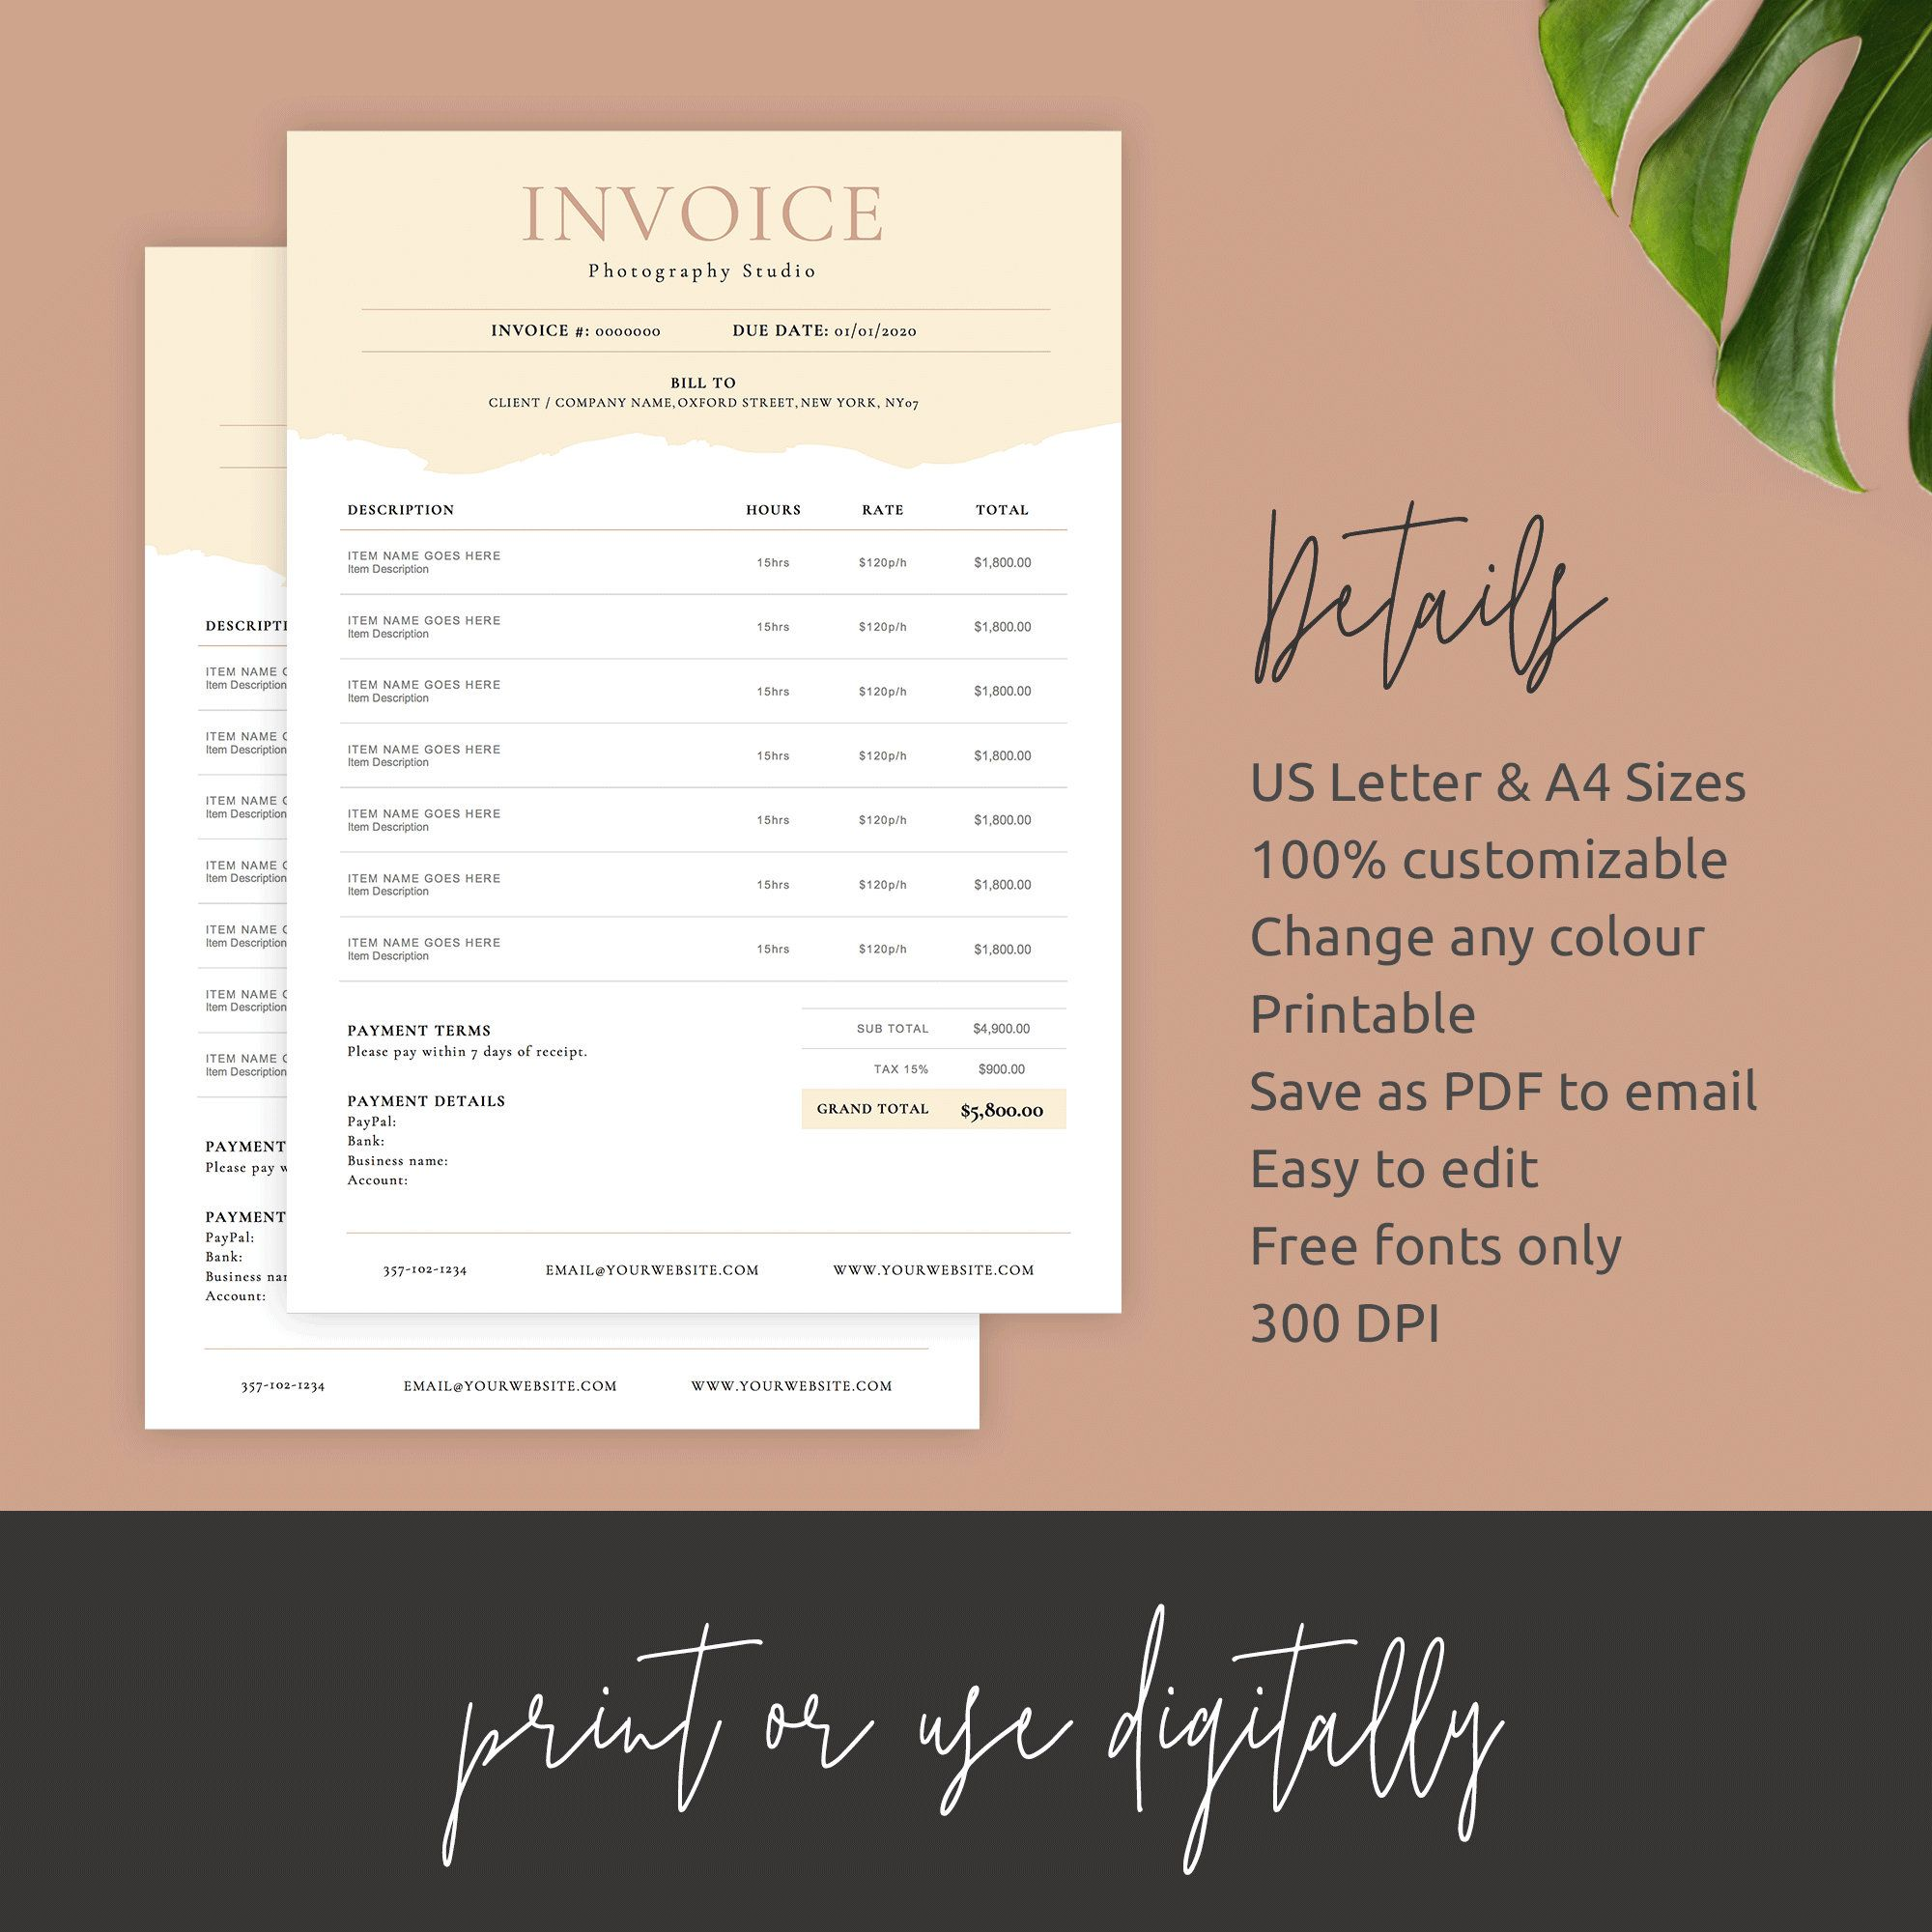 Photography Invoice Template Printable Invoice Photoshop Etsy Photography Invoice Template Photography Invoice Invoice Template Word